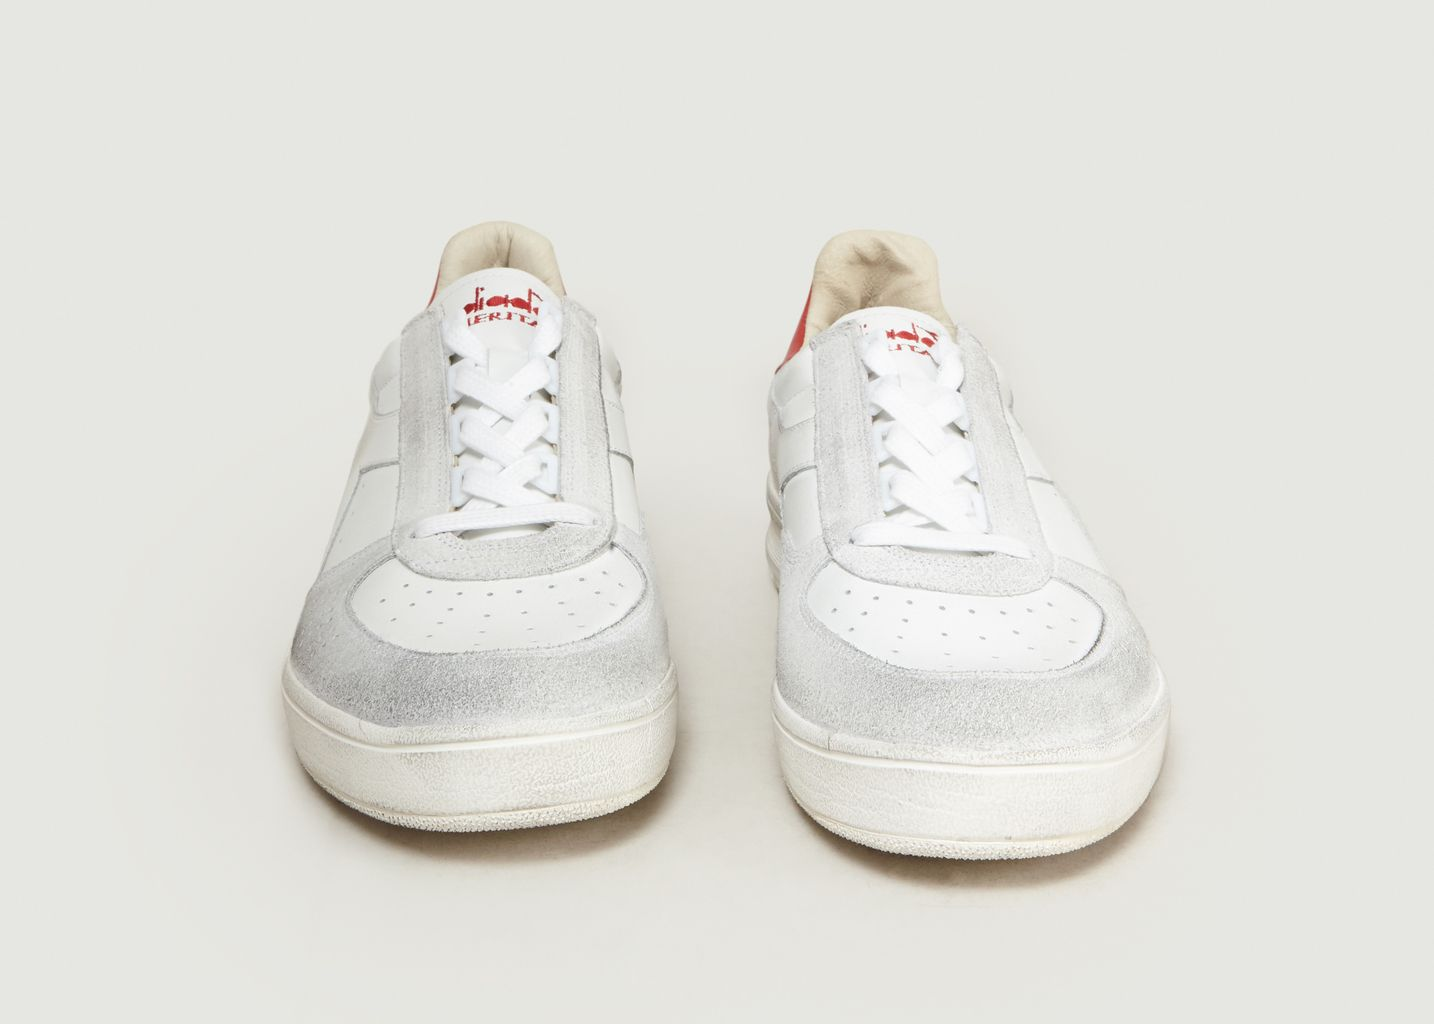 cdc1a06e70 B.Elite H Leather Dirty Trainers